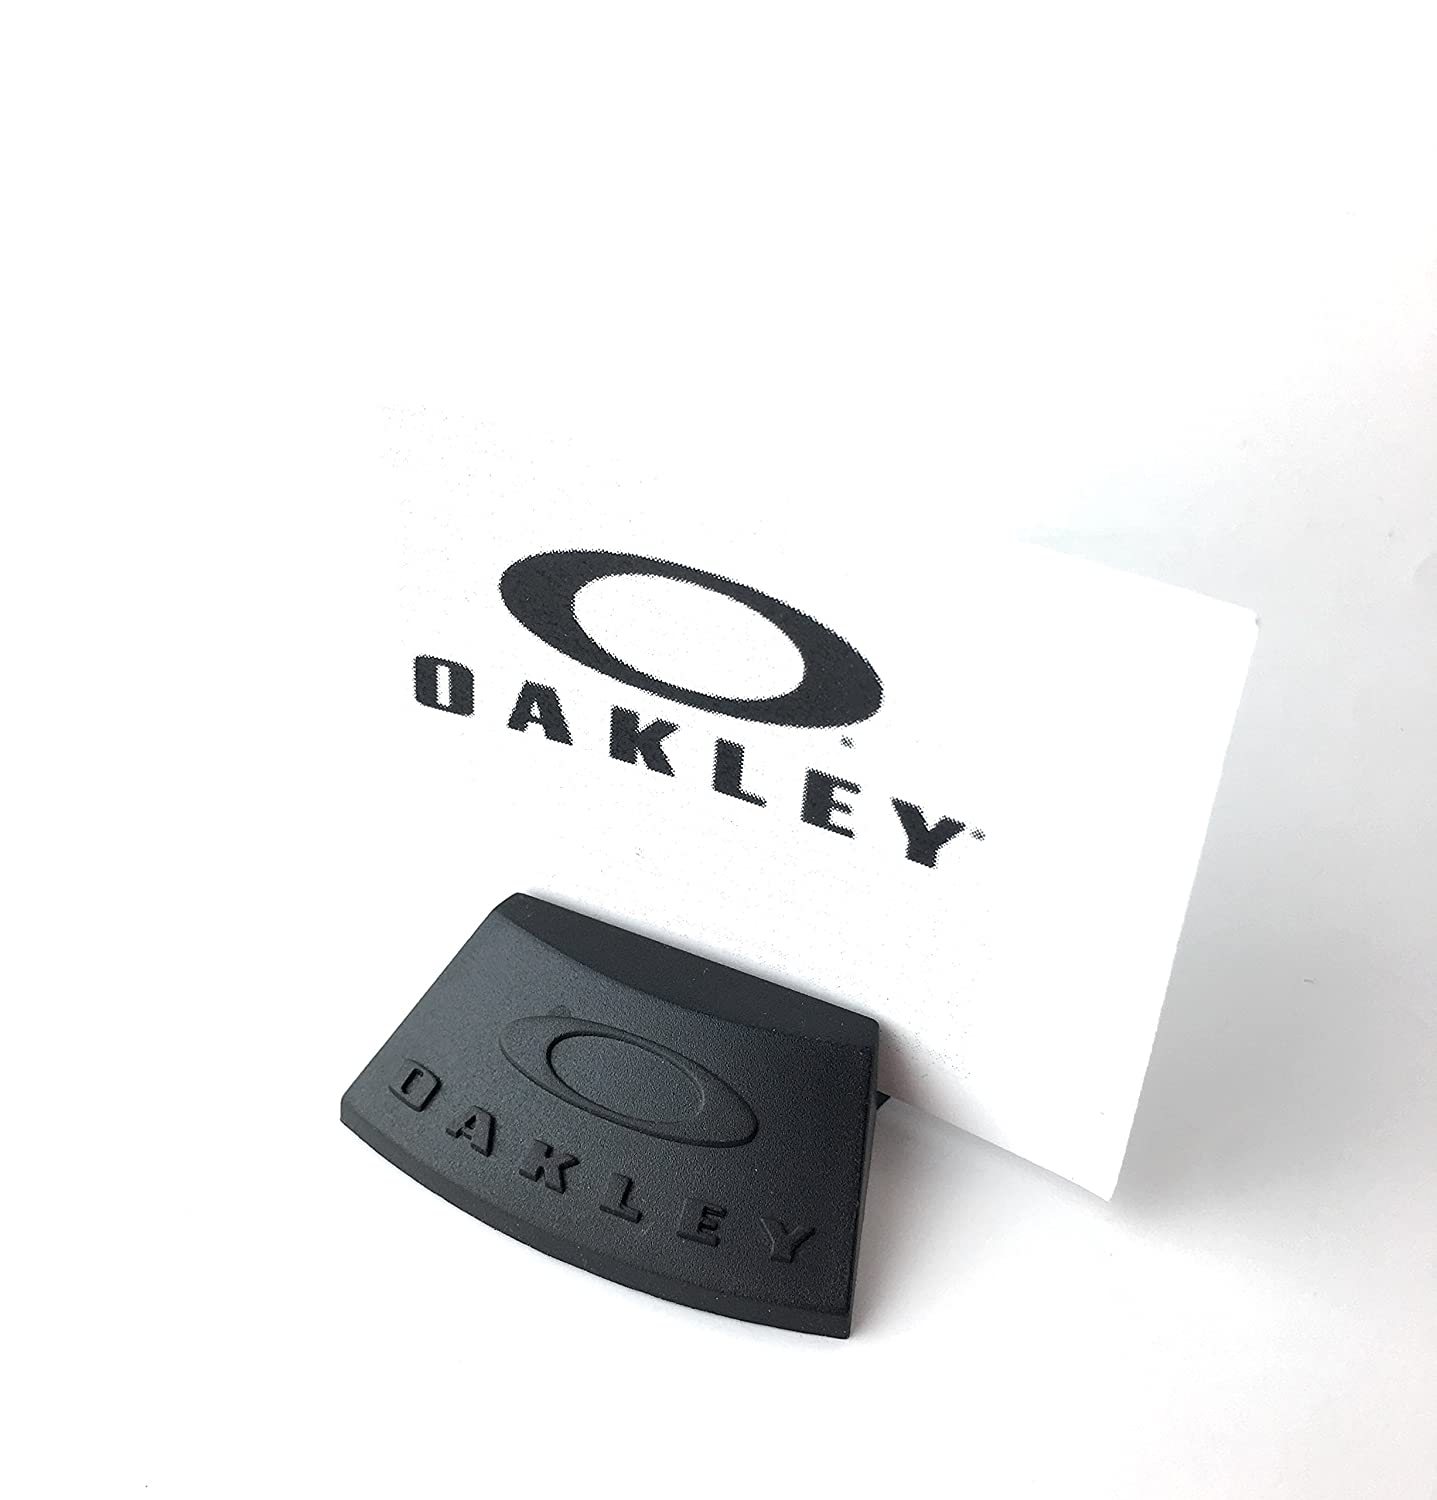 Amazon.com: Oakley Sunglass Holder In-Case Display Stand 2.0 Black ...